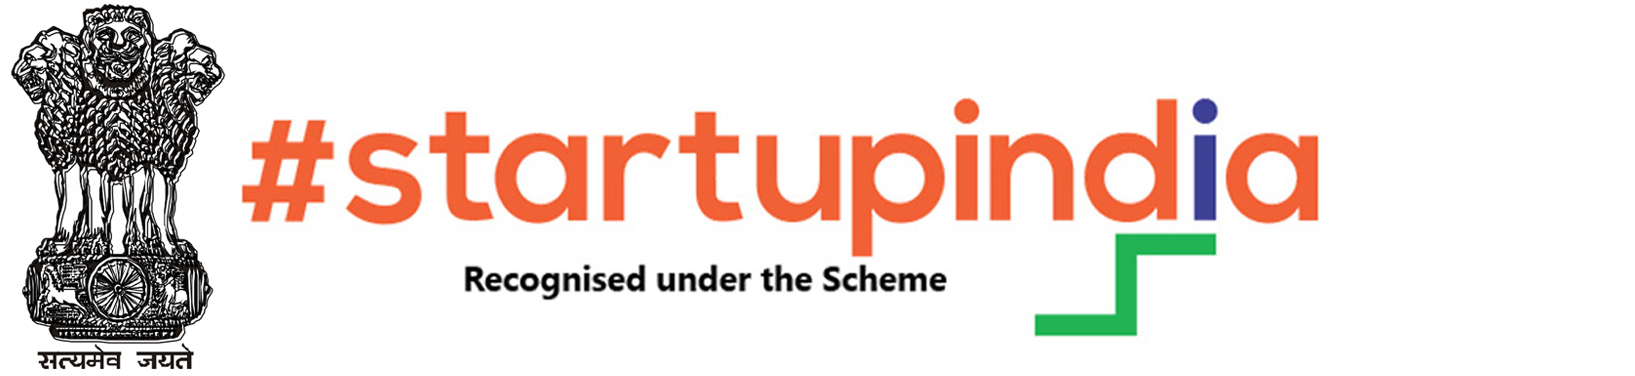 Startup India Seed Fund Scheme of Rs 945 crore